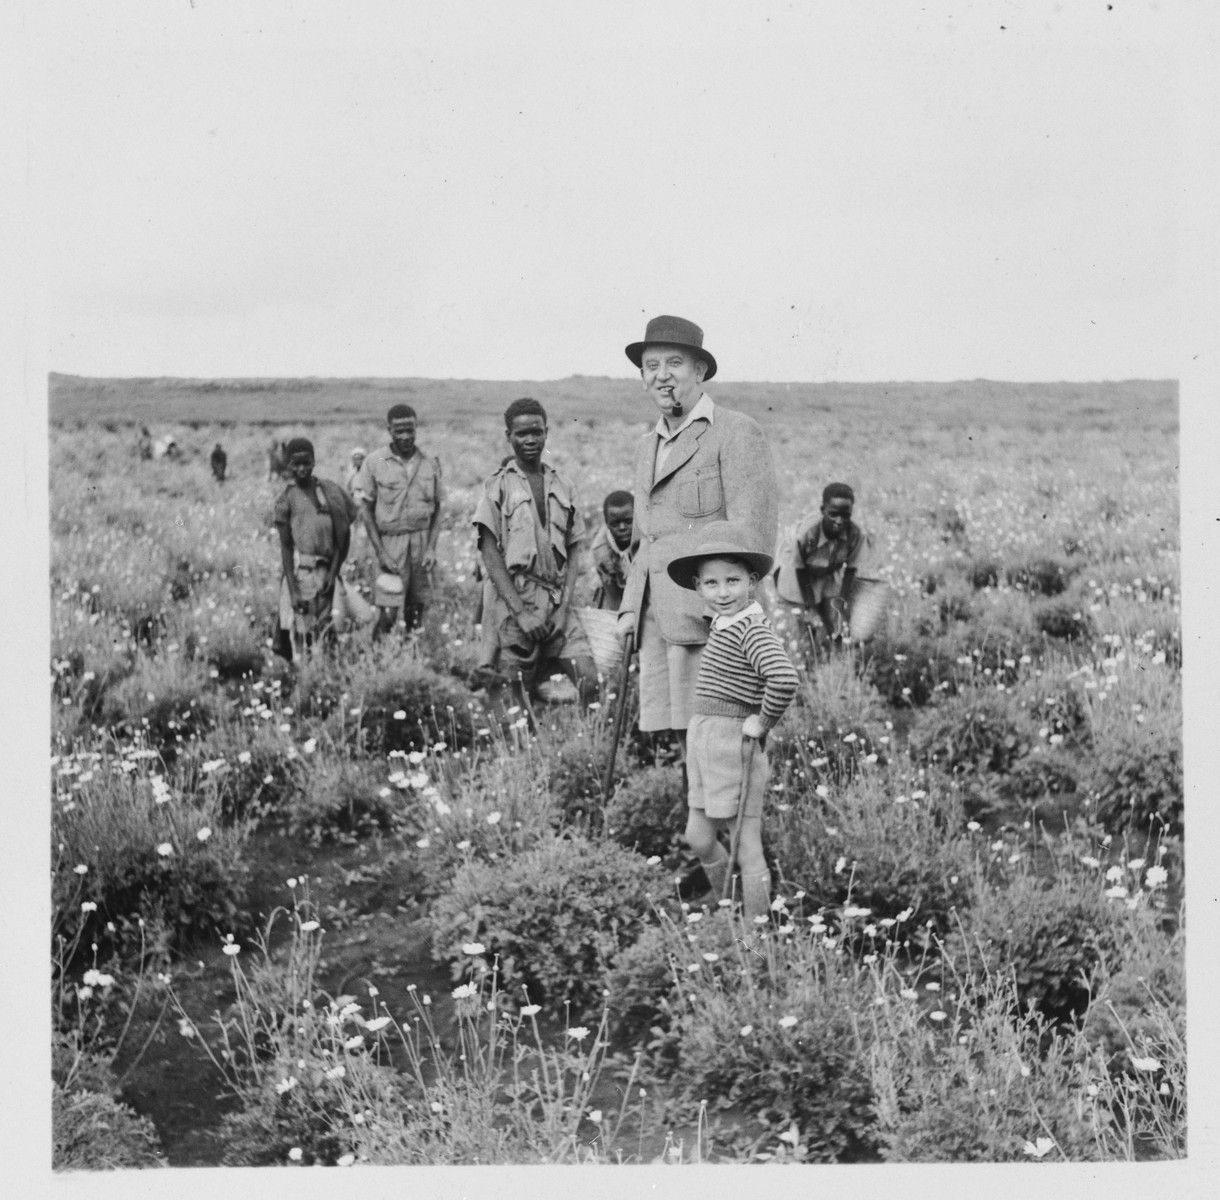 A Jewish refugee farmer inspects the pyrethrum fields where his African farmhands are working.  Pictured are Ernest Berg and his son Philip, who found refuge in Kenya during World War II.